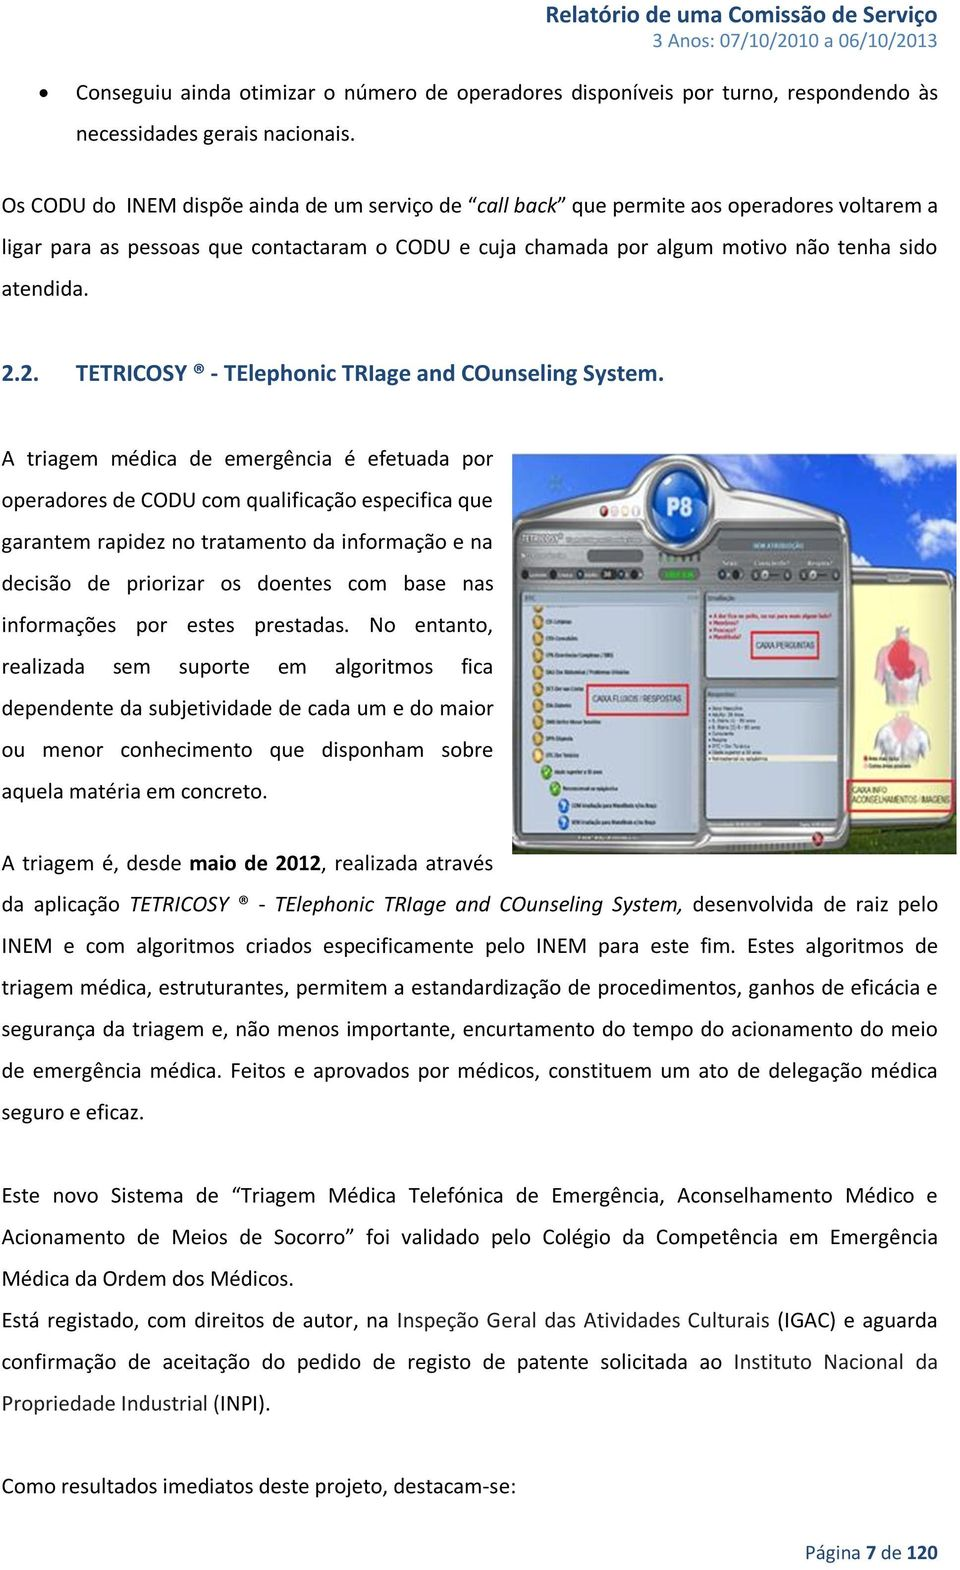 2. TETRICOSY - TElephonic TRIage and COunseling System.